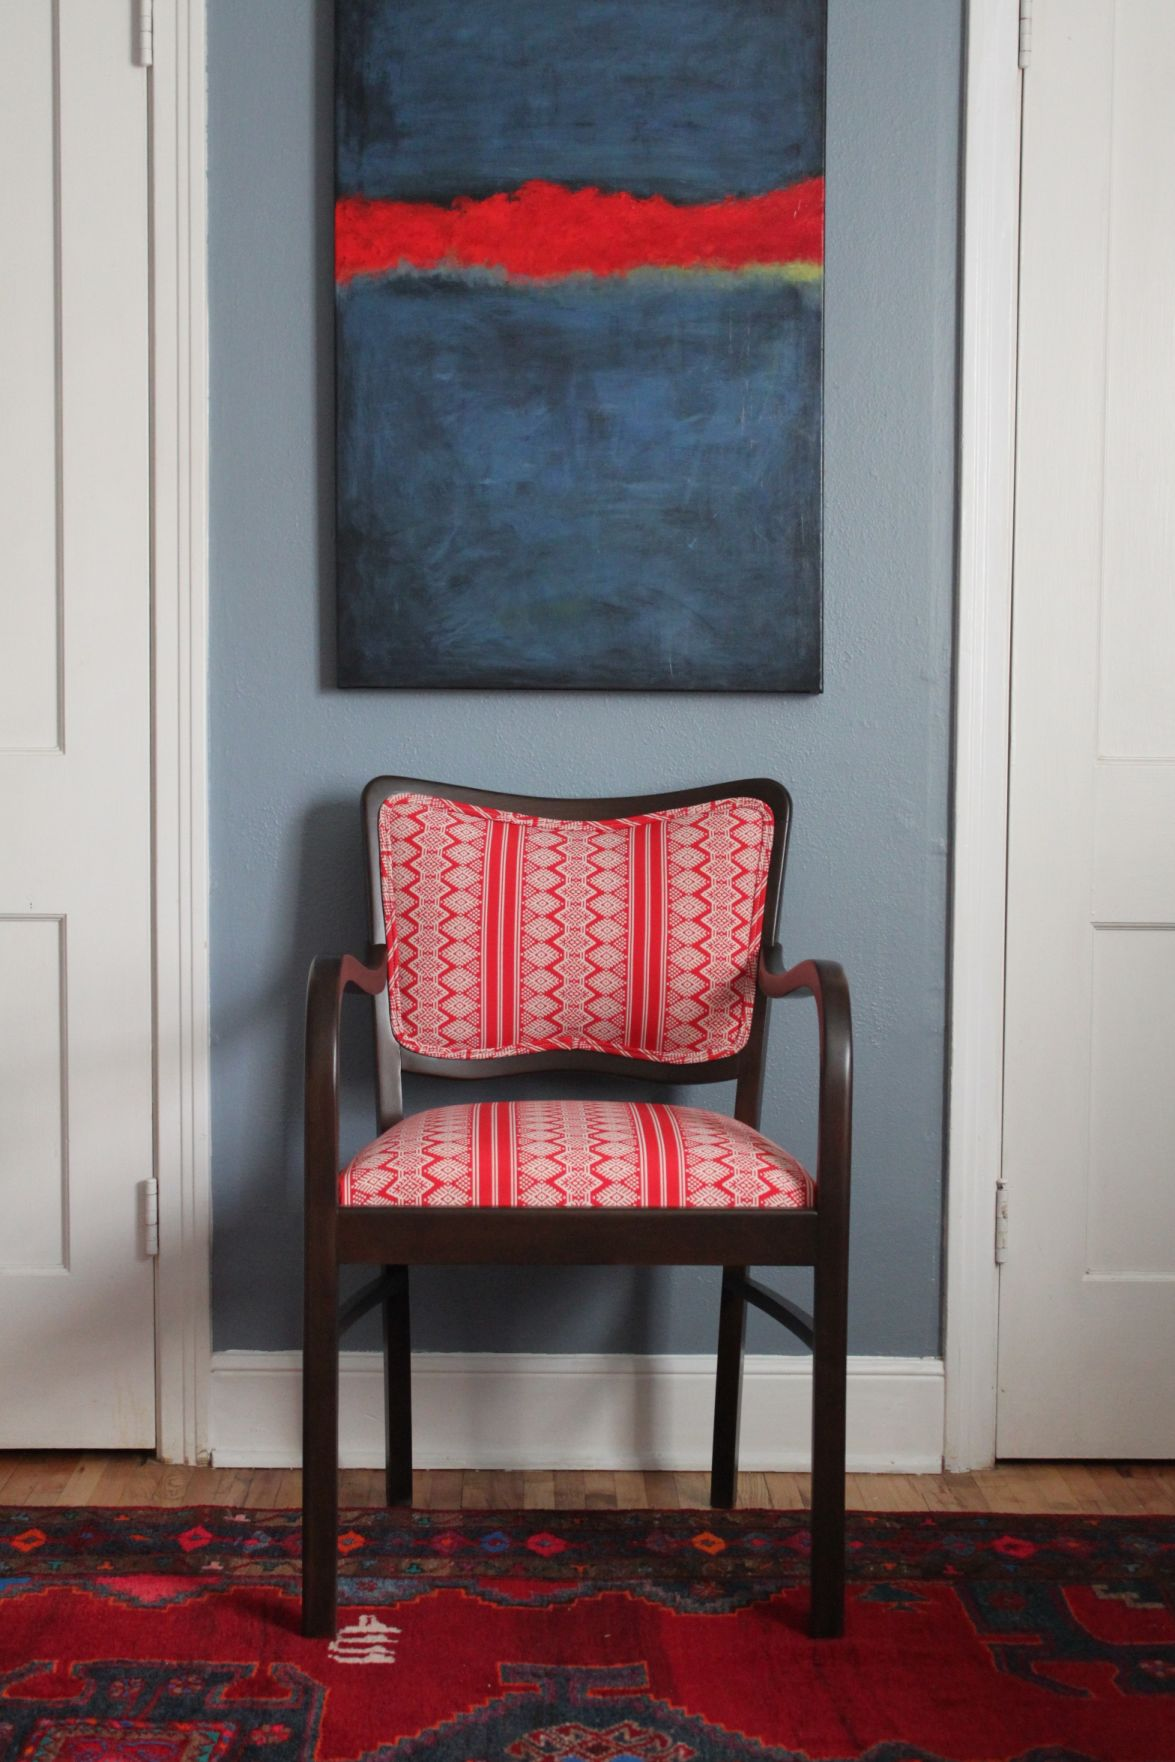 Instead of tossing old sofa, consider DIY reupholstery